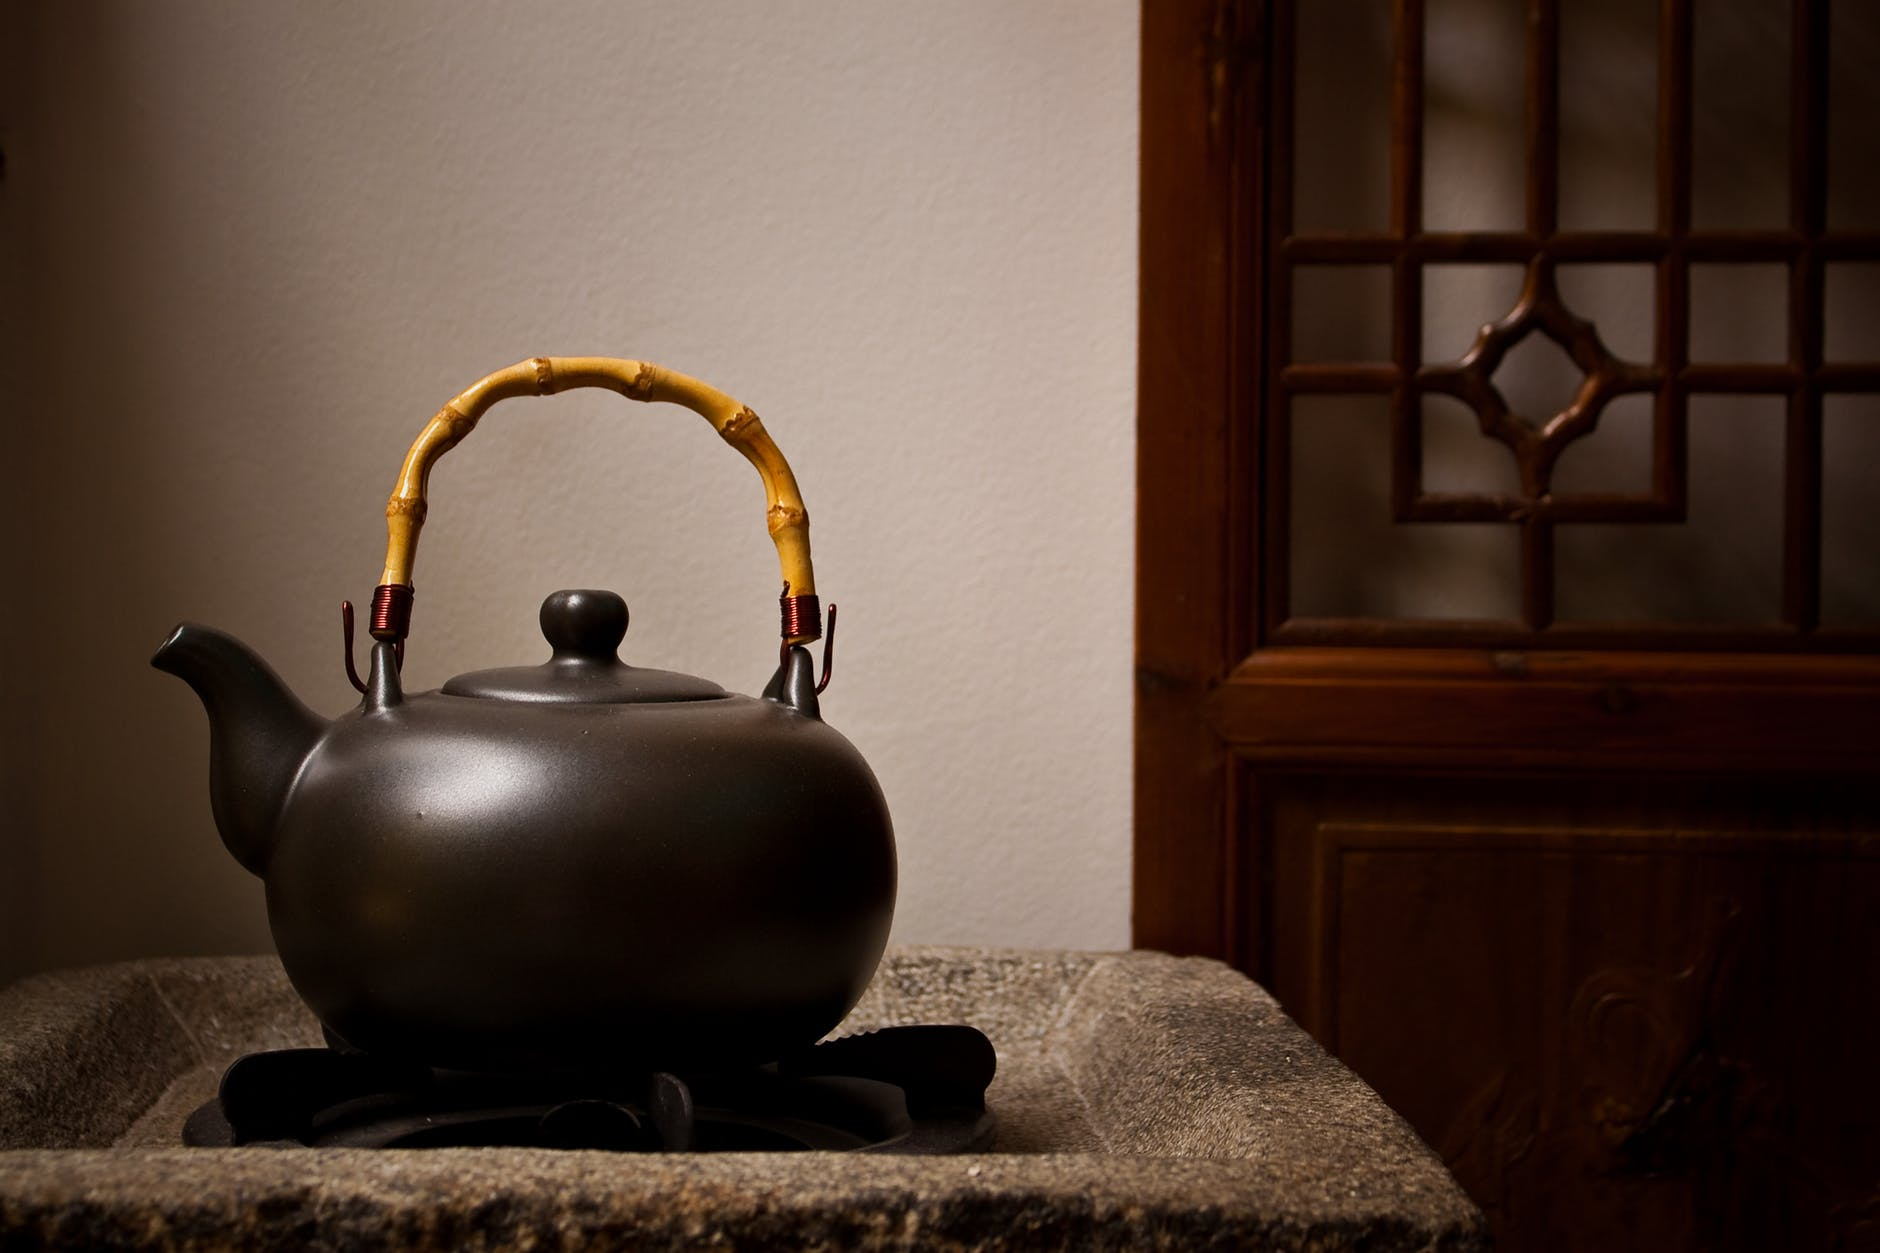 How to Use a Tea Kettle the Right Way